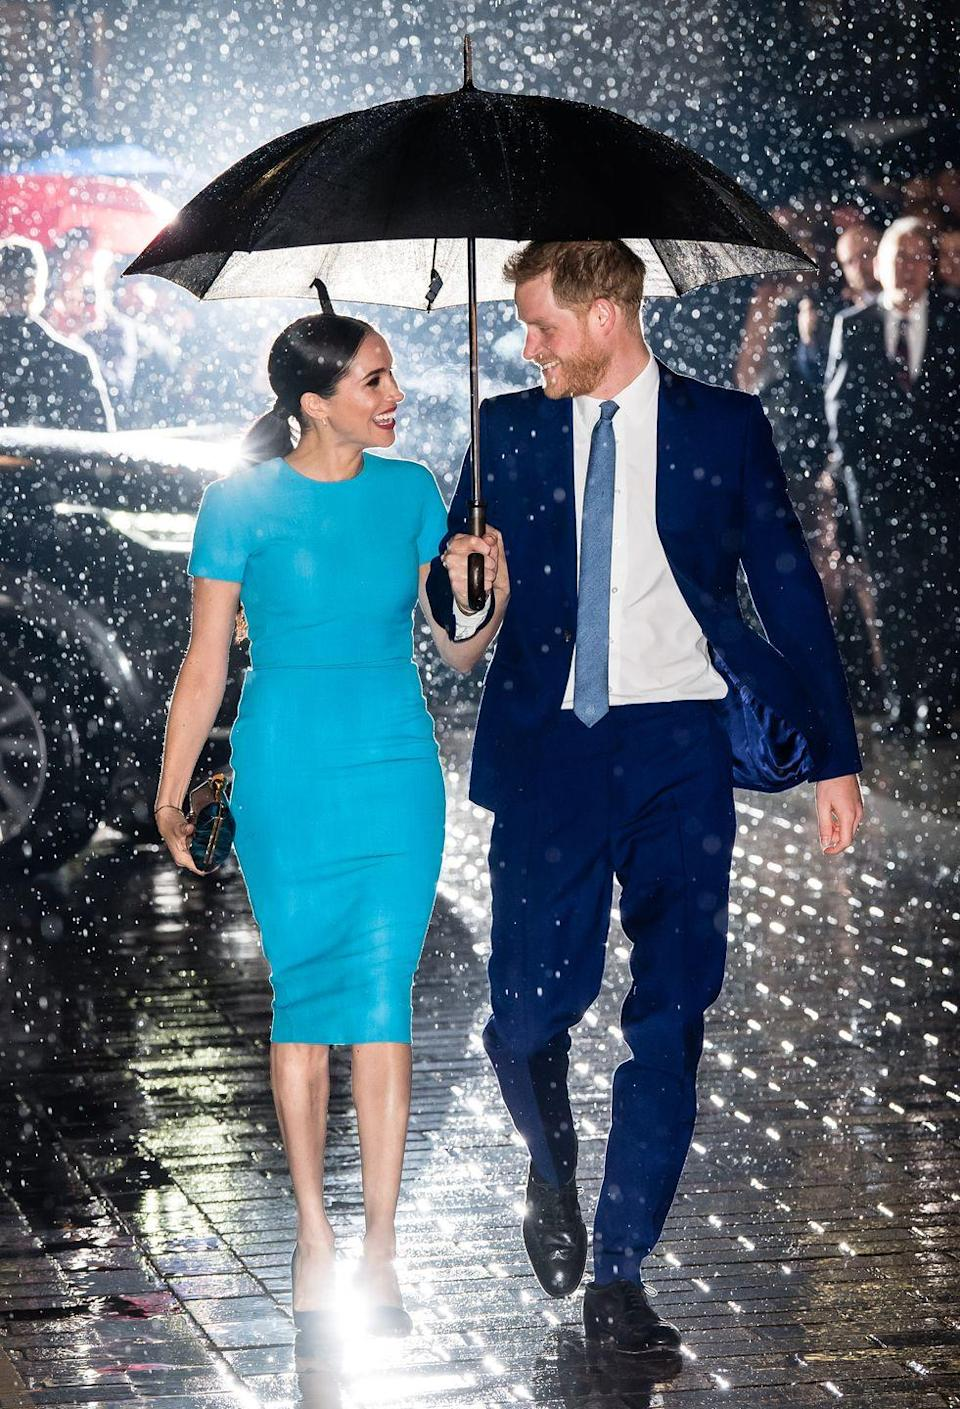 <p>The couple were photographed smiling at each other in the rain as Prince Harry held an umbrella over his wife's head. Could this be any sweeter? </p>